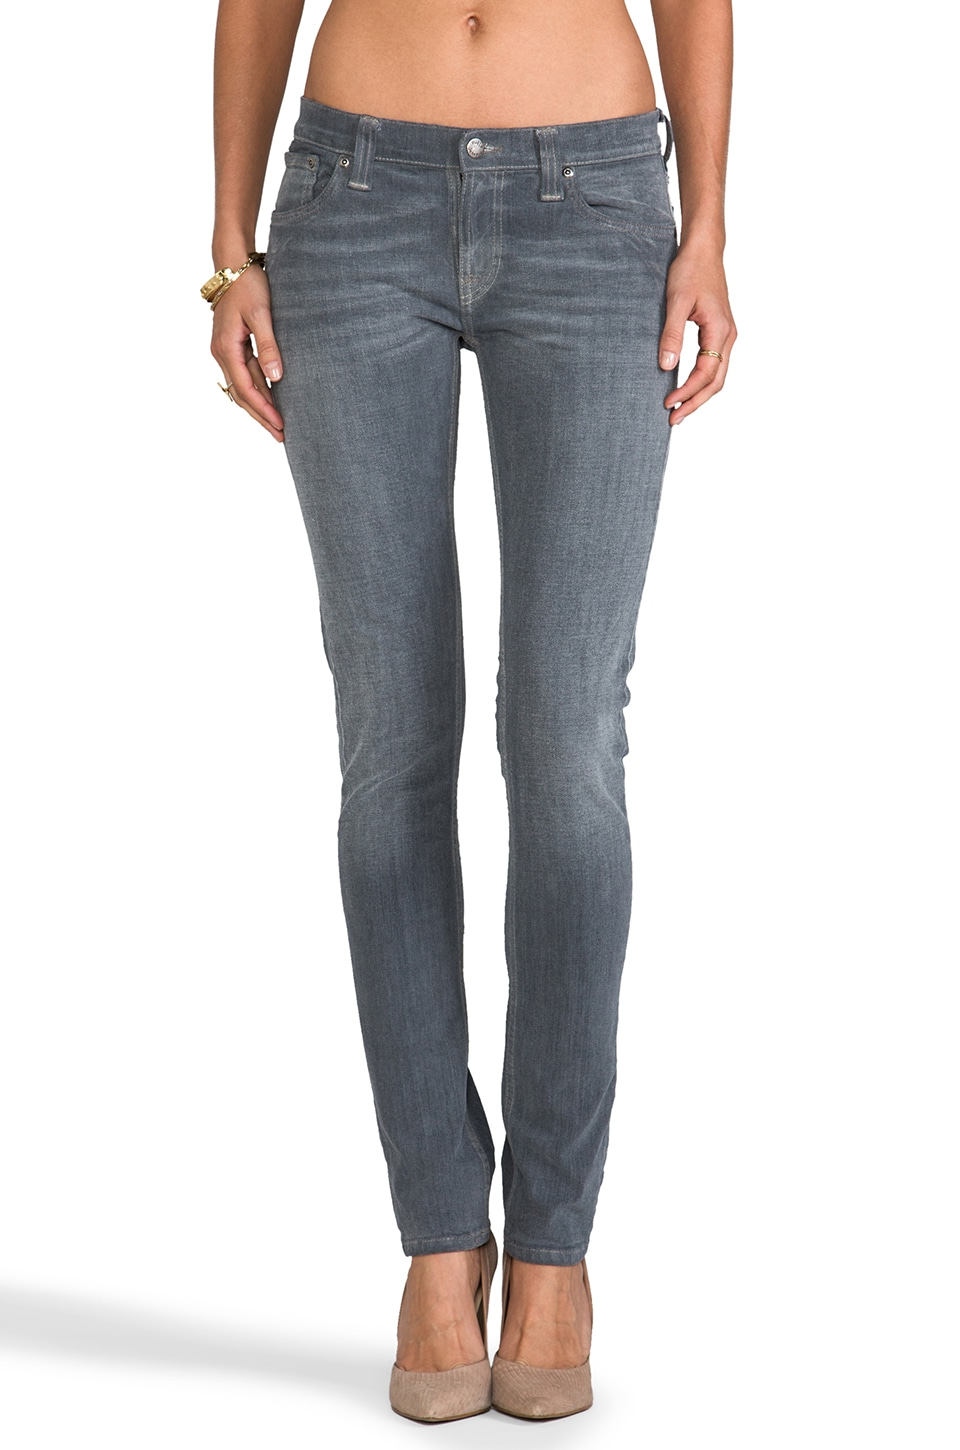 Nudie Jeans Tight Long John in Org Charcoal